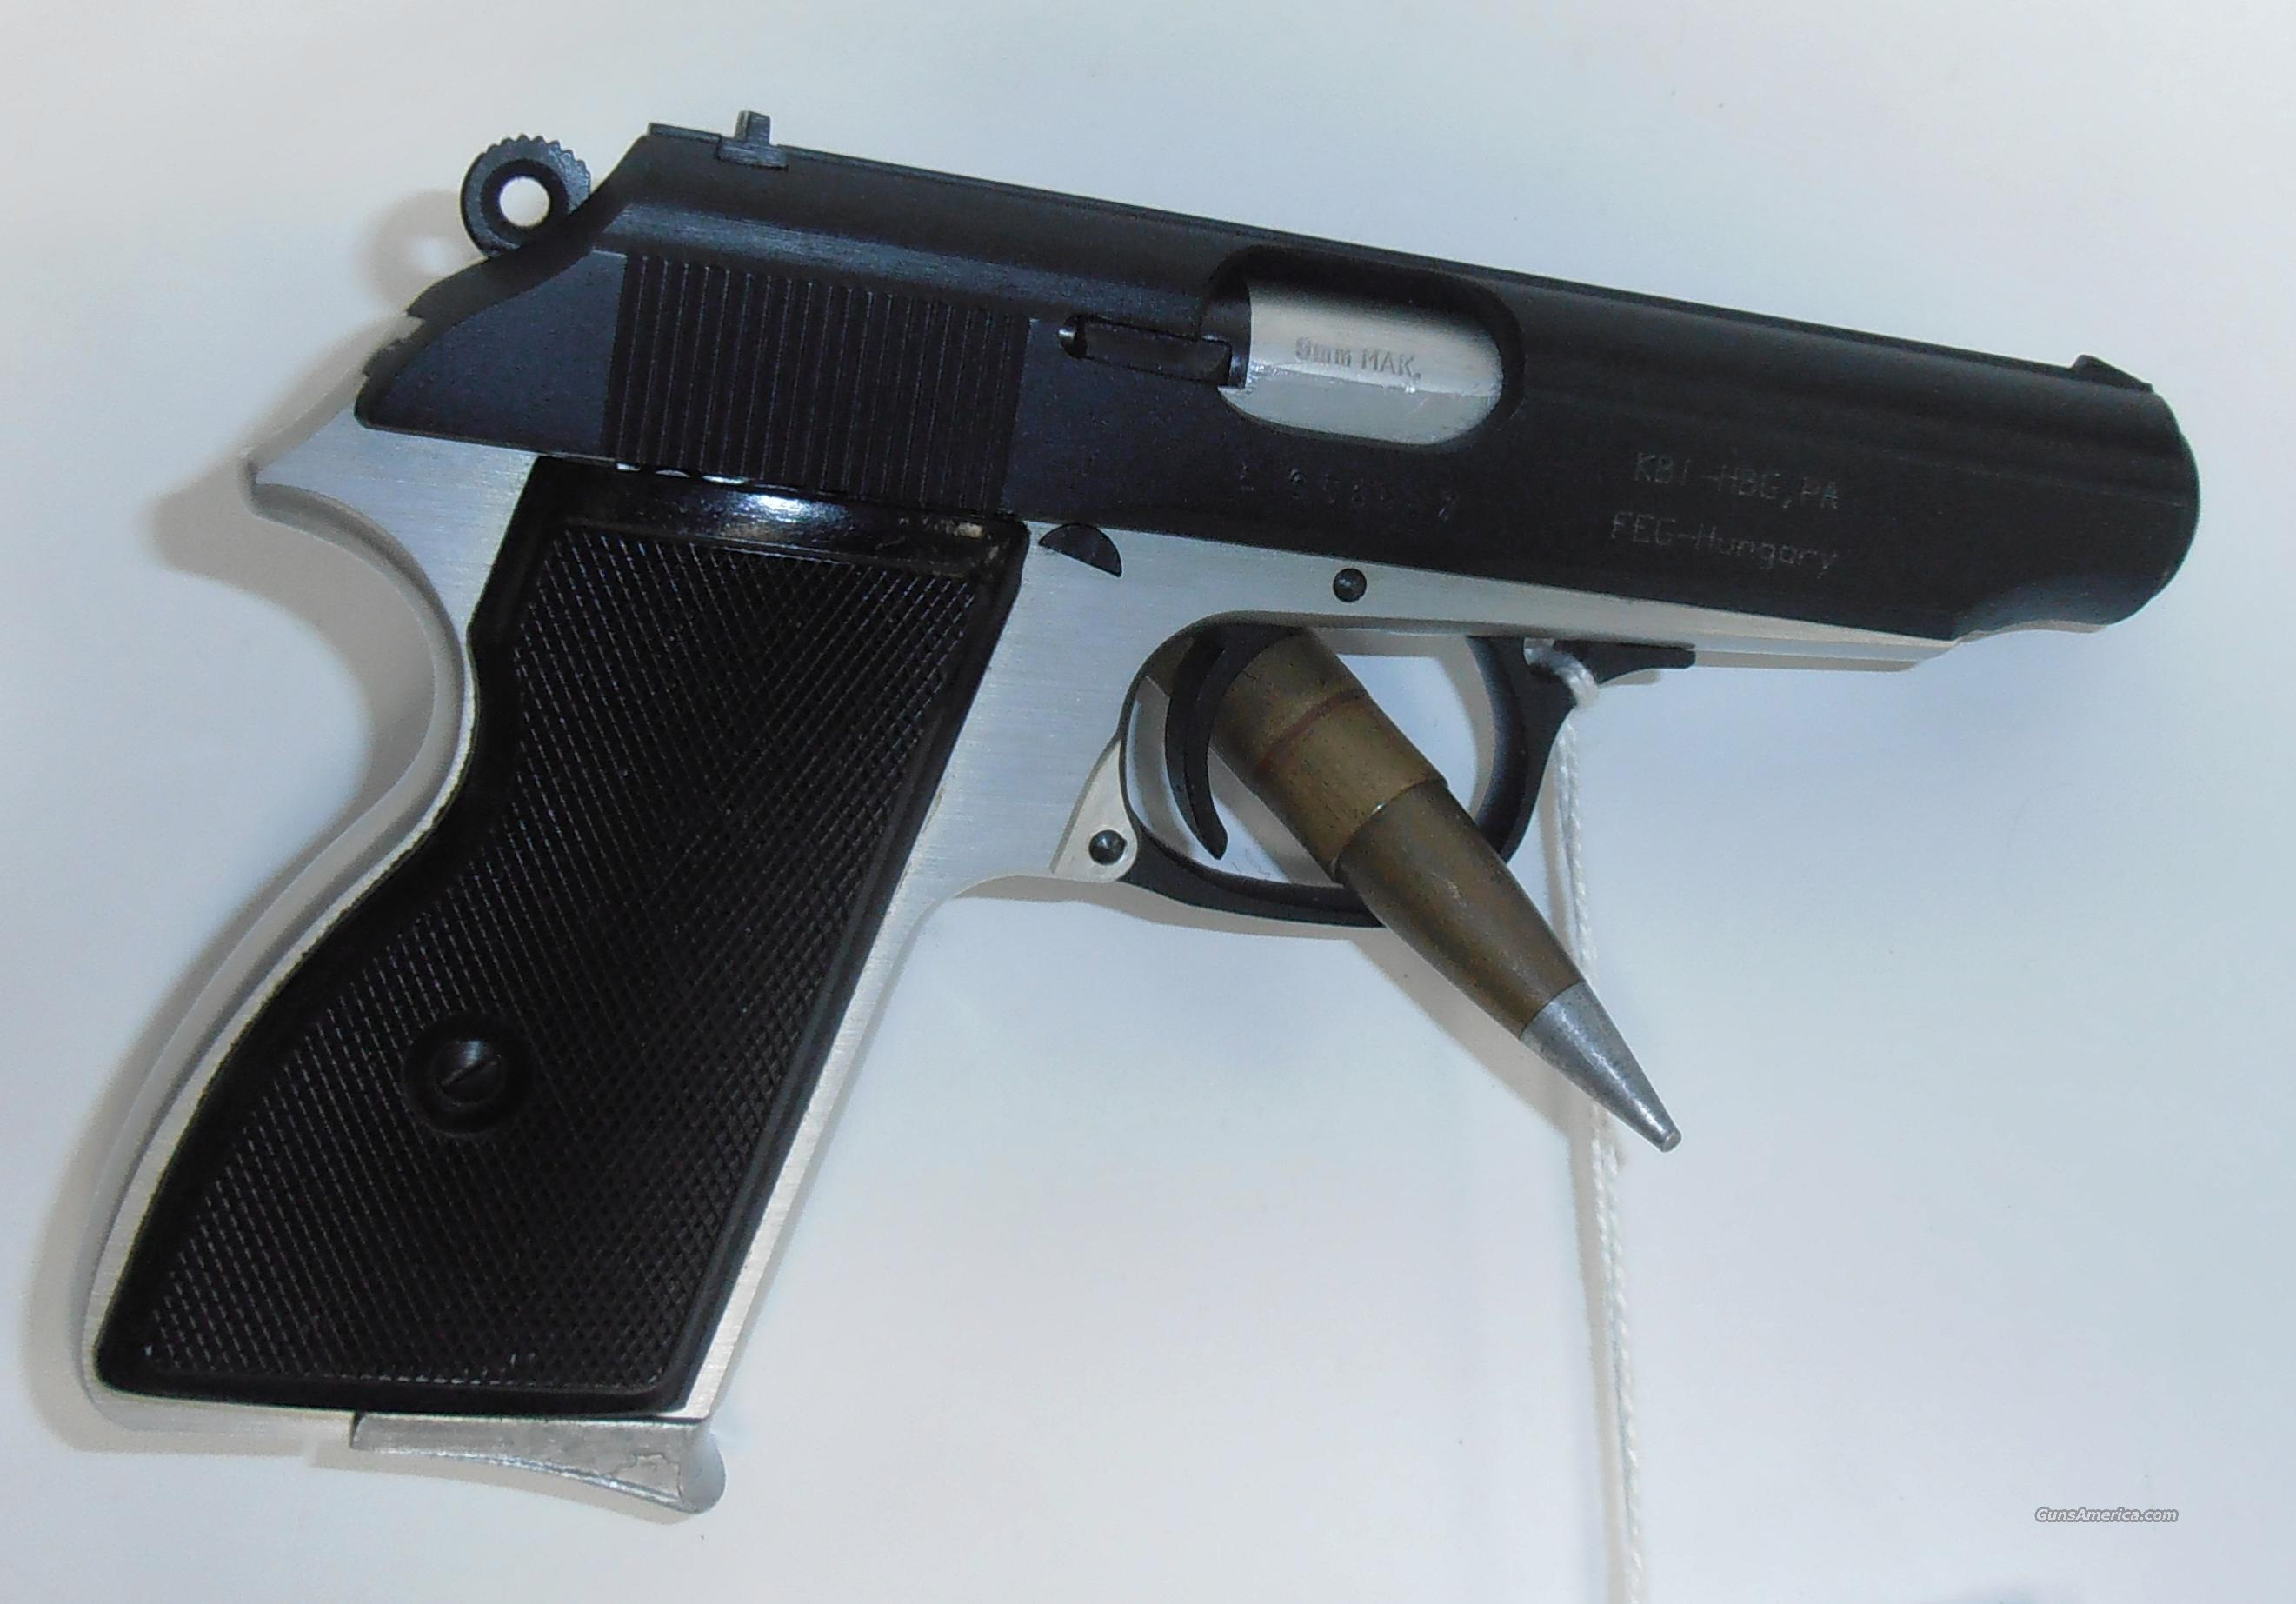 KBI FEG Makarov 9X18 - Made in Hungry - Very Good Condition  Guns > Pistols > KBI/FEG Pistols